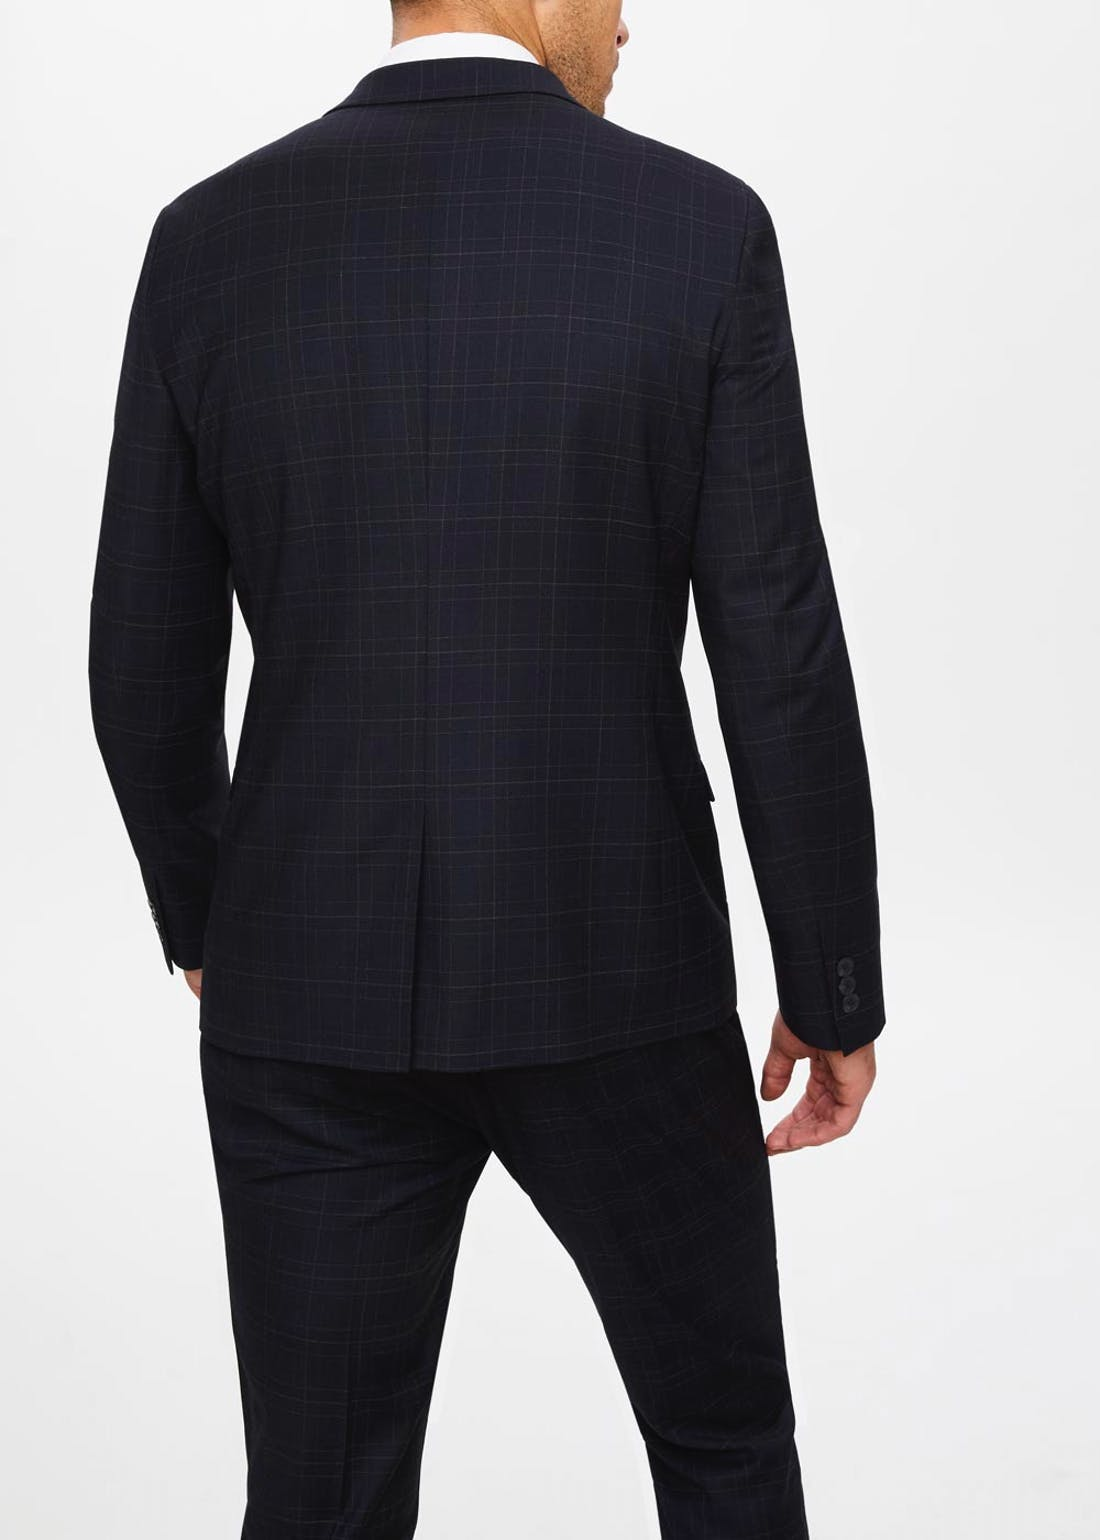 Hopkins Skinny Fit Check Suit Jacket